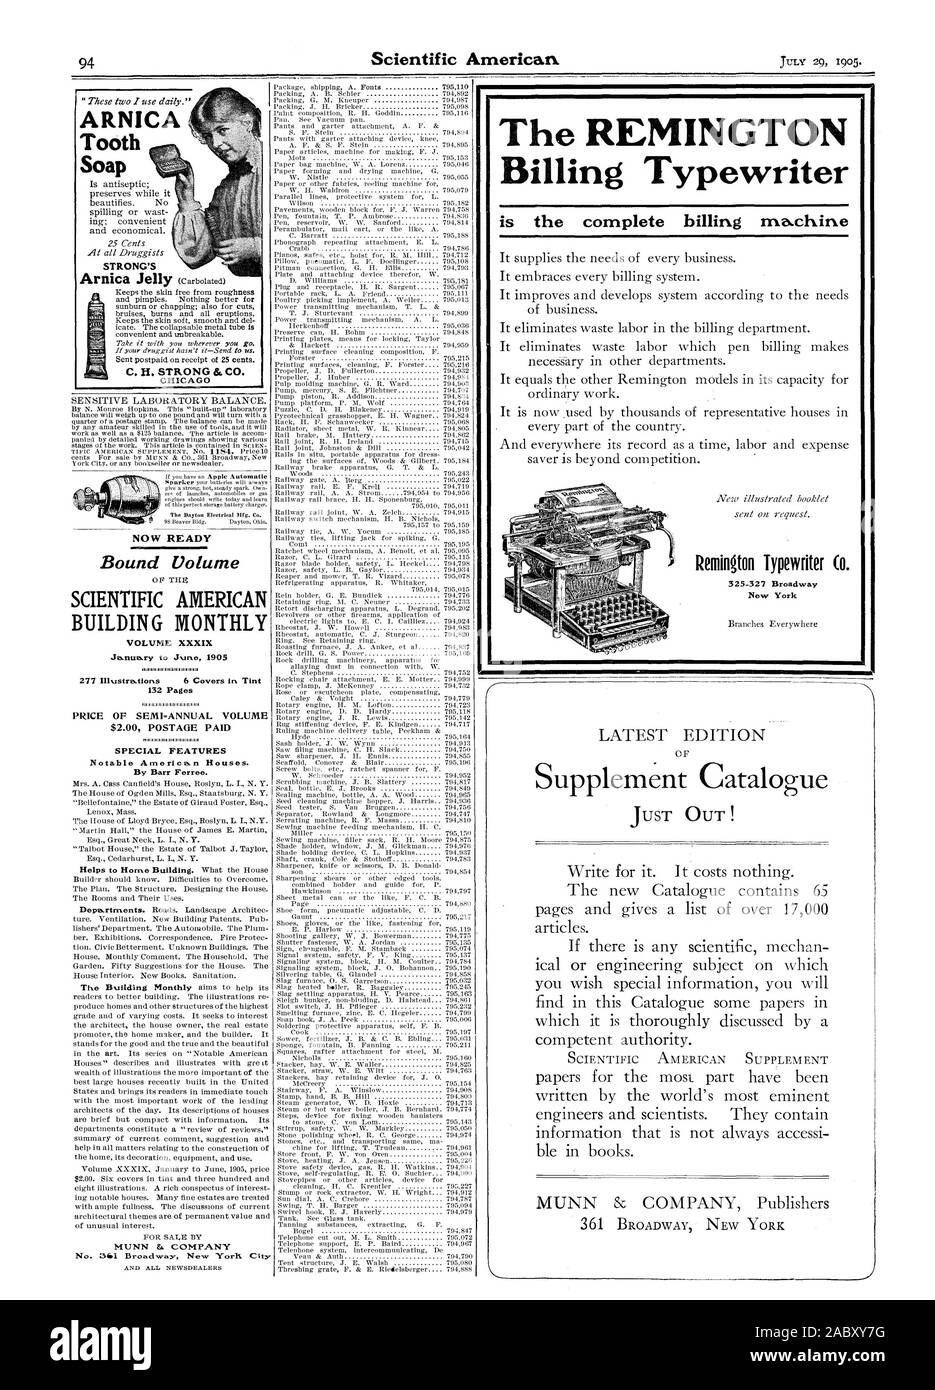 by any amateur skilled in the use of tools. and it will work as well as a $125 balance. The article is accom panied by detailed working drawings showing various stages of the work. This article is contained in SCIEN York City or any bookseller or newsdealer. NOW READY Bound Volume VOLUME XXXIX January to June 1905 illI3 I 277 Illustrations   6 Covers in Tint 132 Pages PRICE OF SEMI-ANNUAL VOLUME $2.00 POSTAGE PAID SPECIAL FEATURES Notable American Houses. By Barr Ferree. AND ALL NEWSDEALERS Packing A. B. Sehier   7950 Package shipping A. Fonts     : Packing G. M. Kneuper   794987 Packing J. H Stock Photo